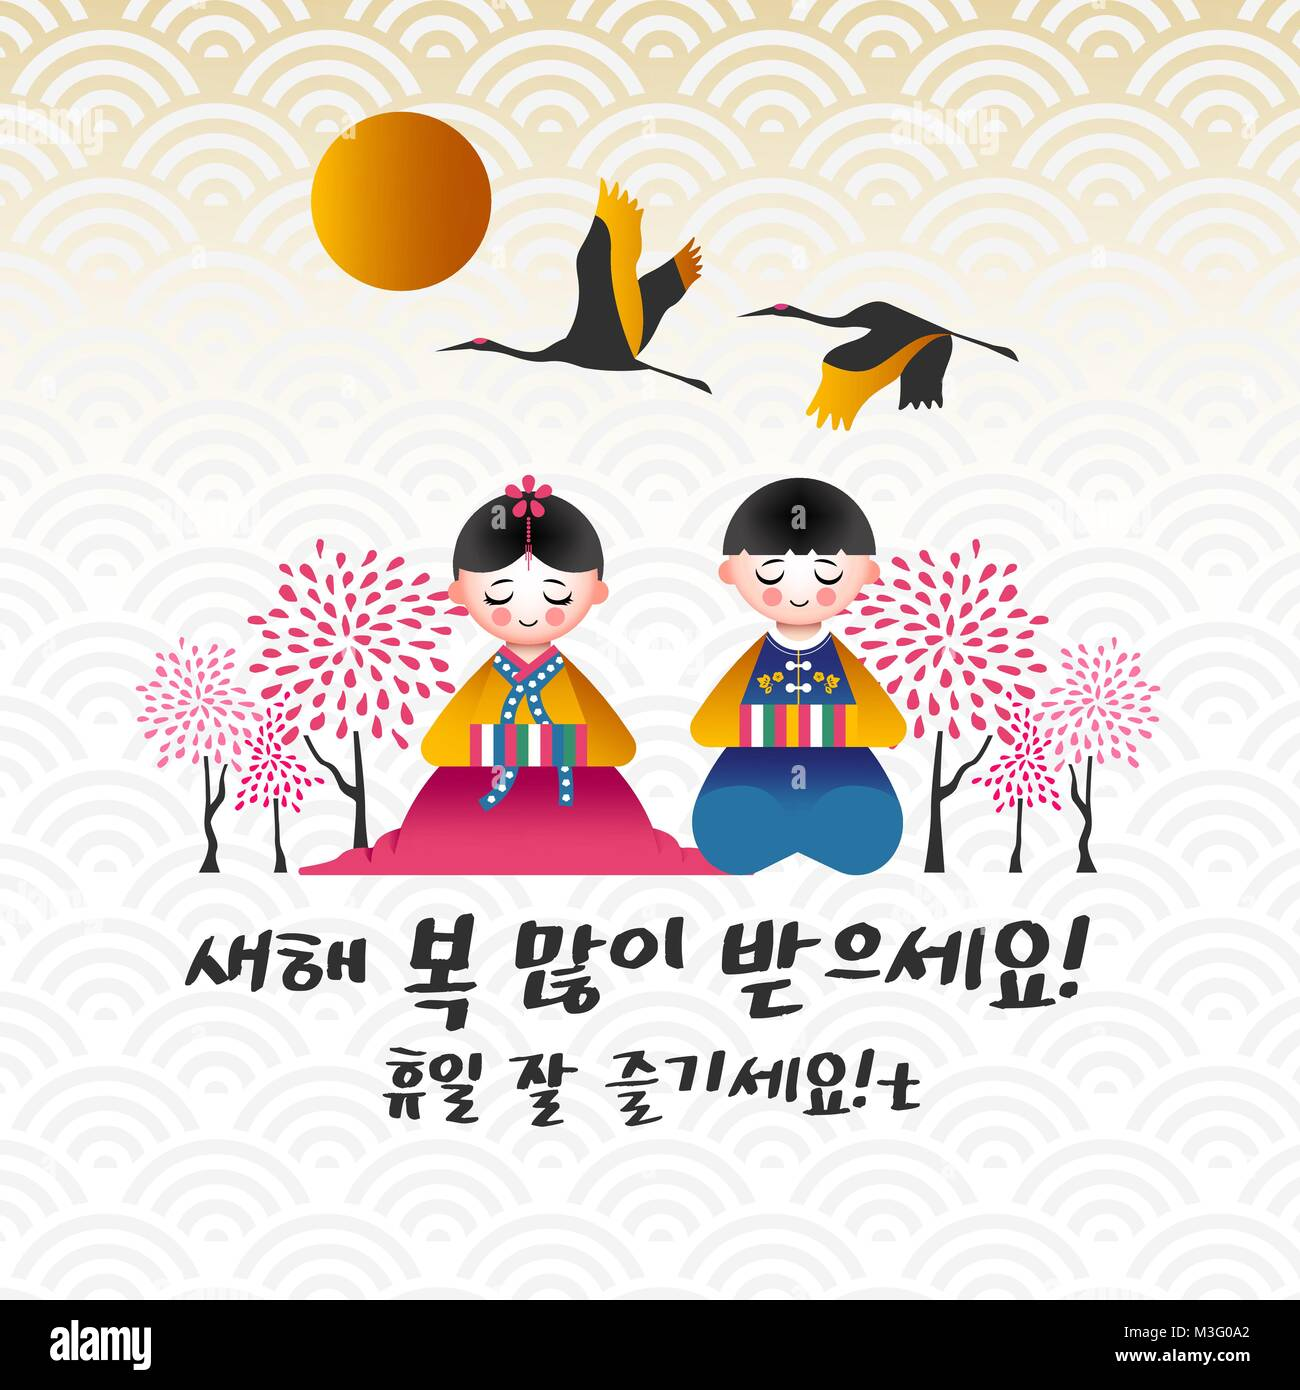 Happy korean new year 2018 greeting card with cute kids in stock happy korean new year 2018 greeting card with cute kids in traditional hanbok holiday clothing and calligraphy message for good fortune son daughter m4hsunfo